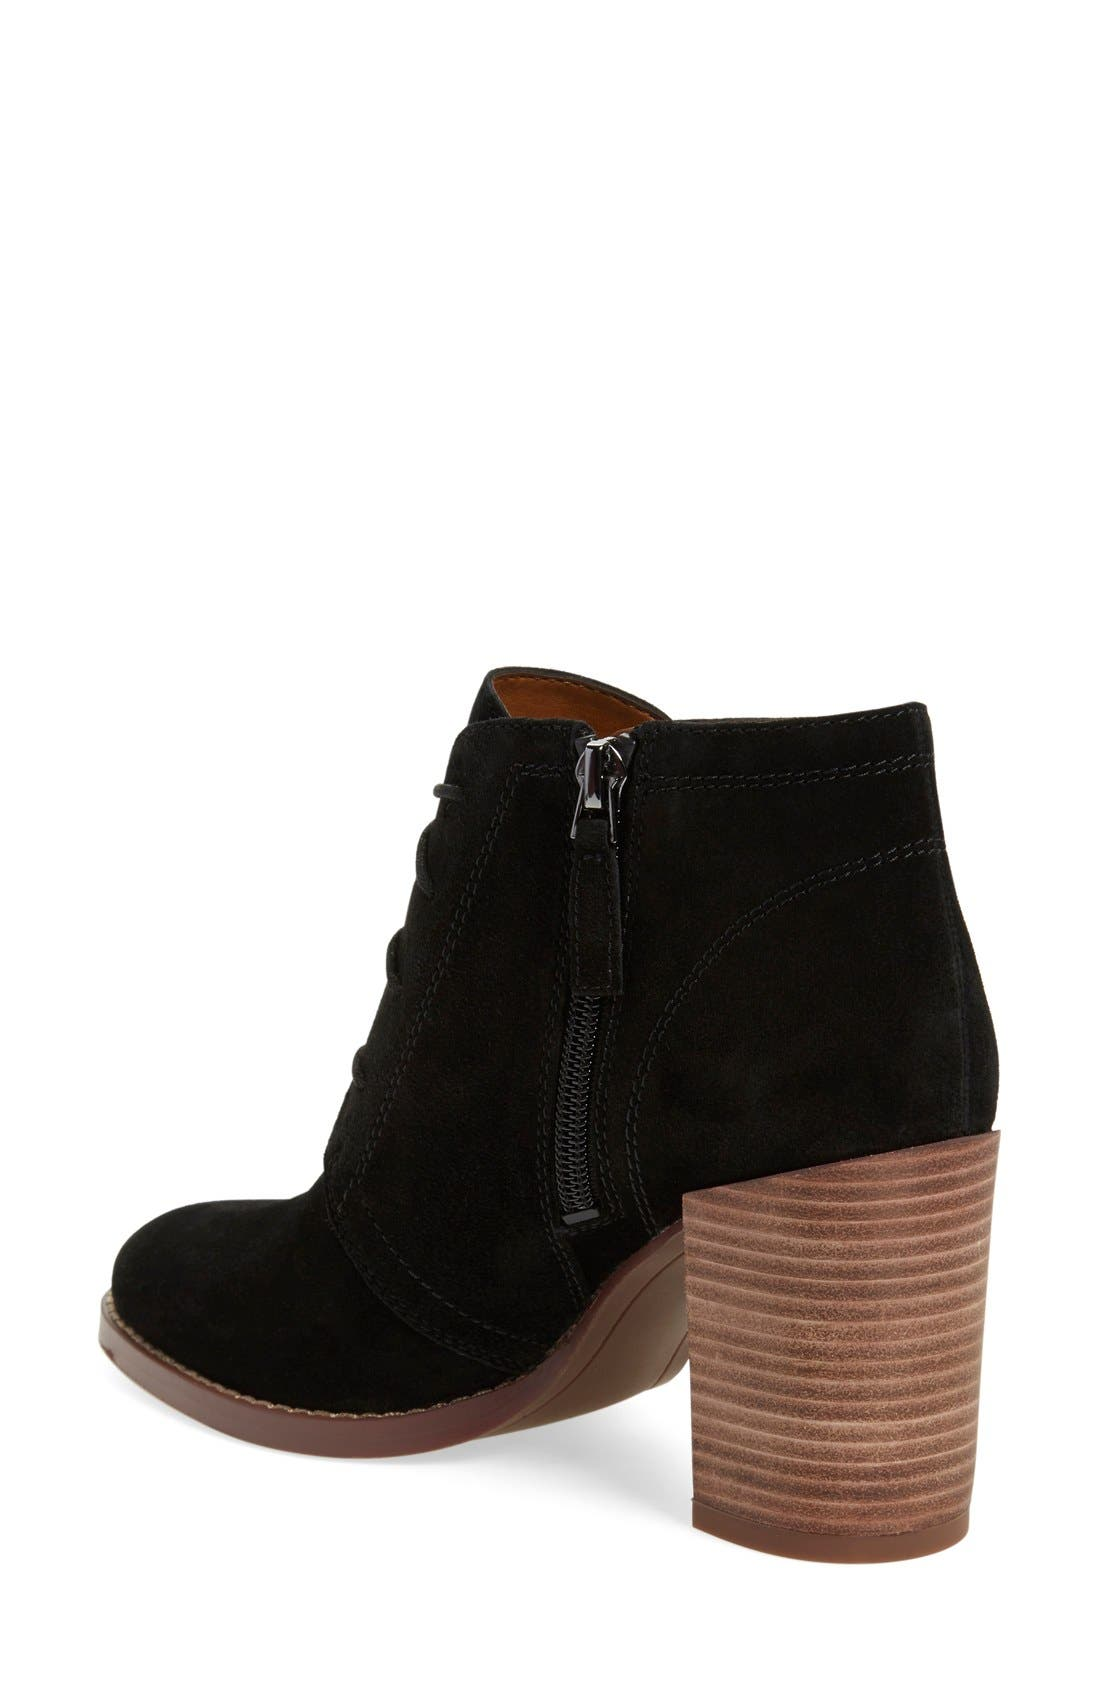 'Omani' Block Heel Bootie,                             Alternate thumbnail 2, color,                             Black Suede